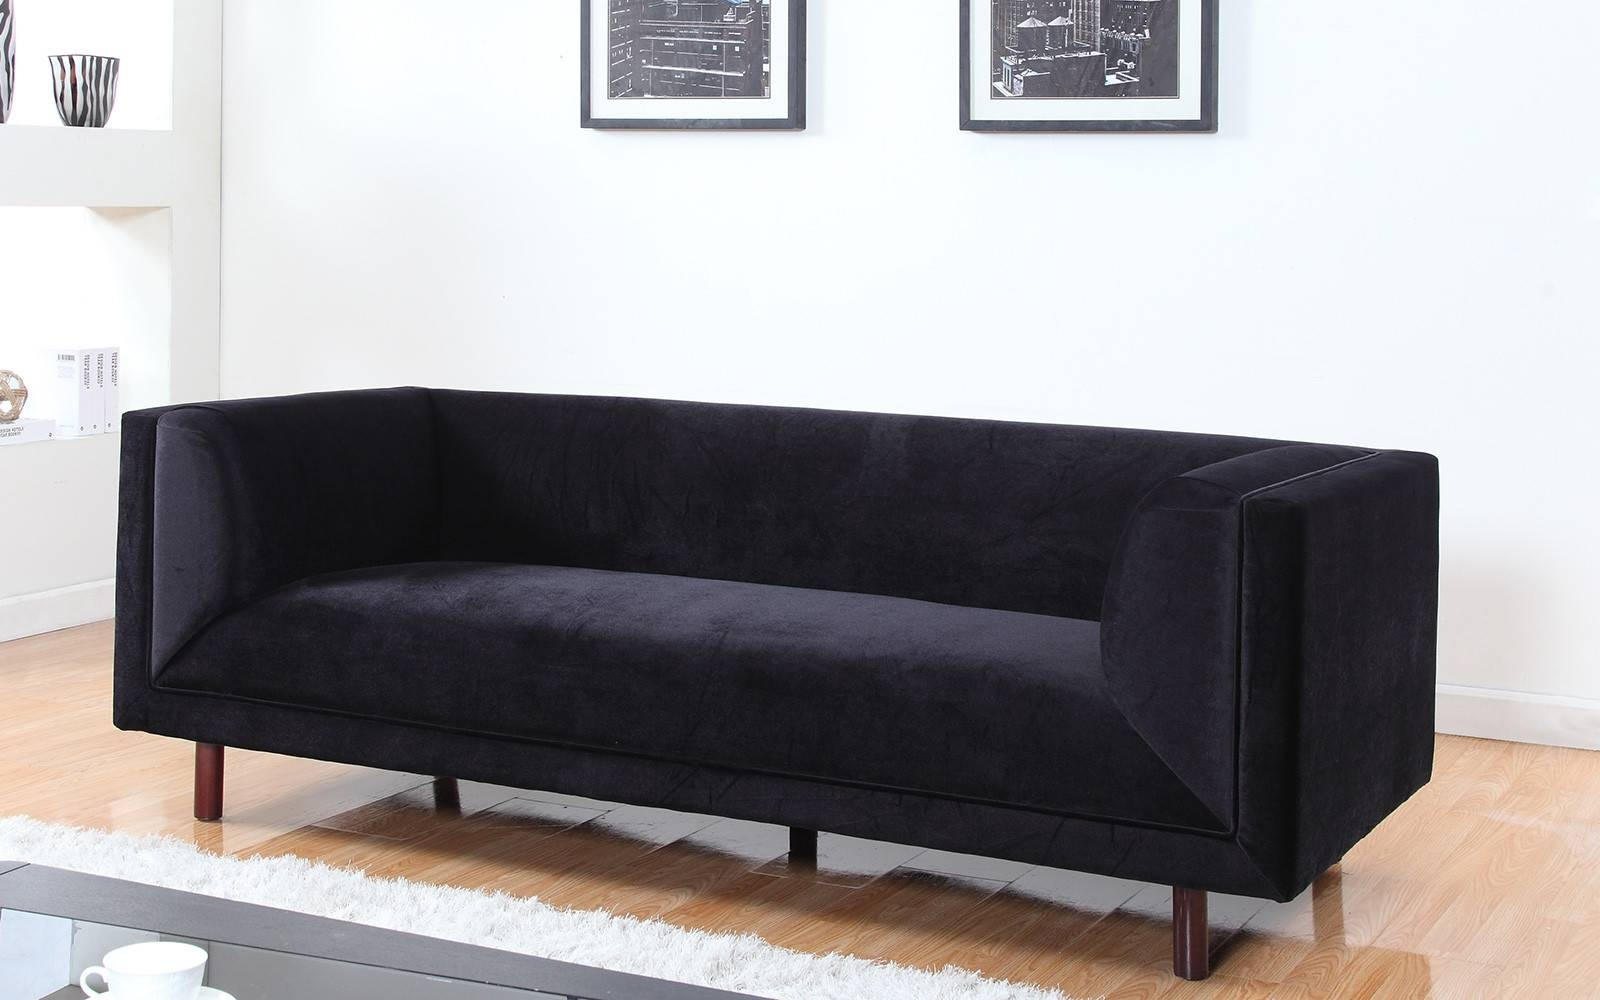 Modern Contemporary Large 3 Seater Velvet Sofa - Walmart with regard to Black Velvet Sofas (Image 17 of 30)